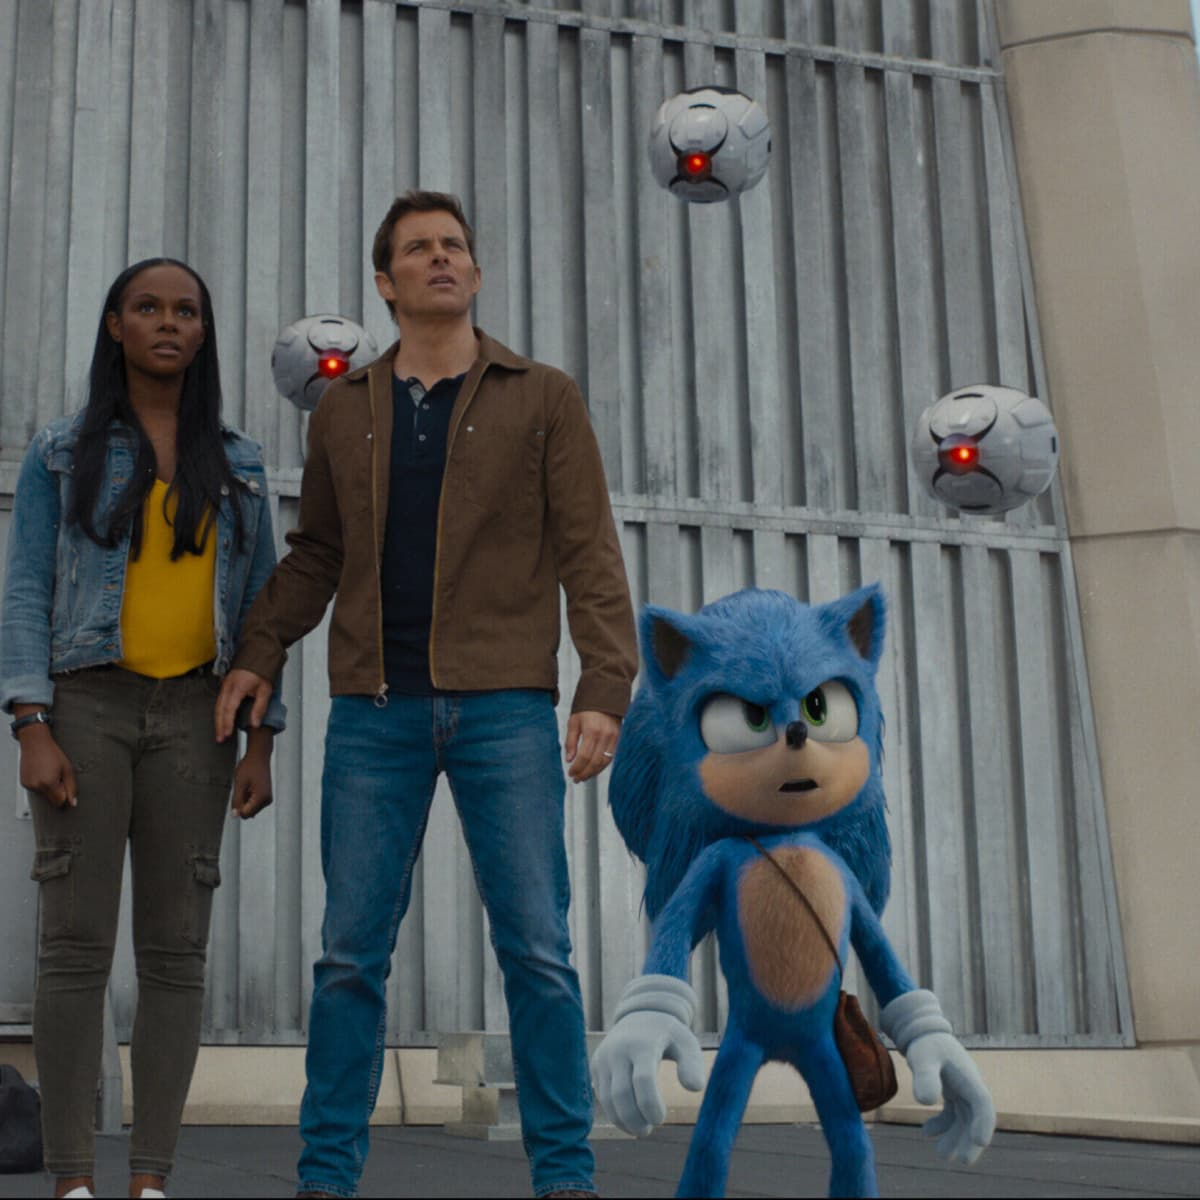 Sonic The Hedgehog' Movie Sets Box Office Record On Opening Week